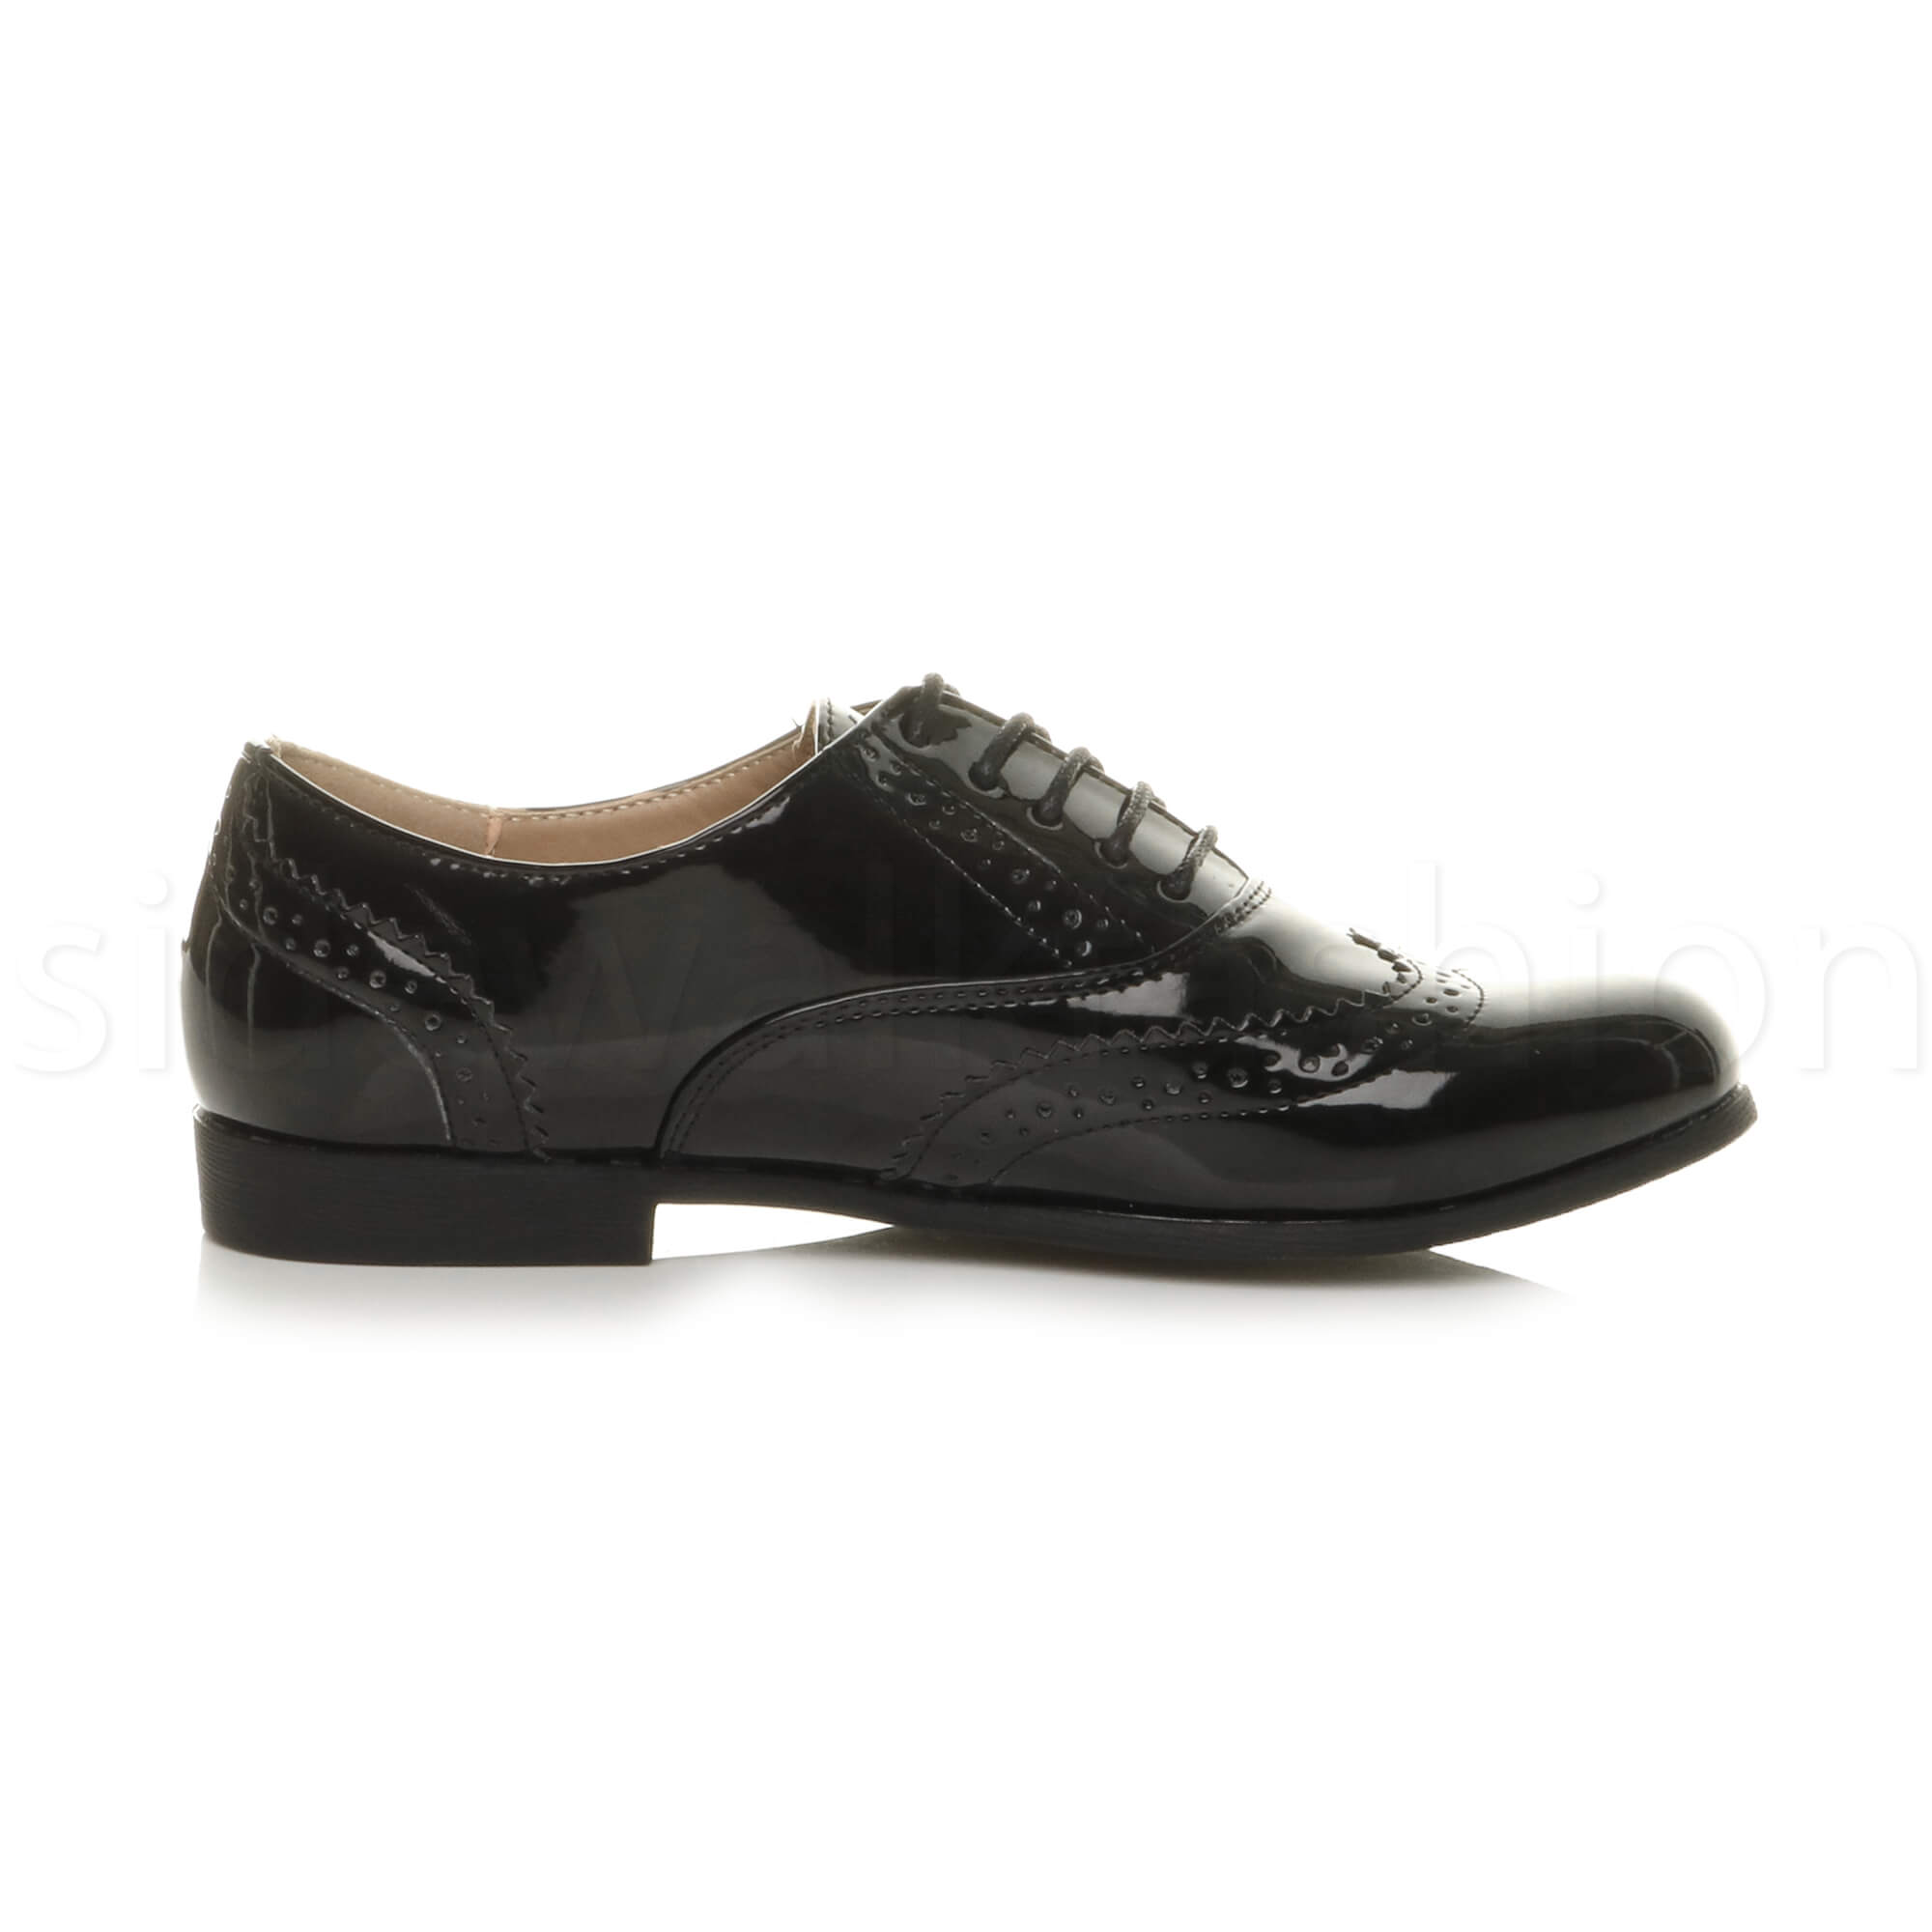 Womens ladies lace up smart old fashioned oxfords brogues work shoes flats size